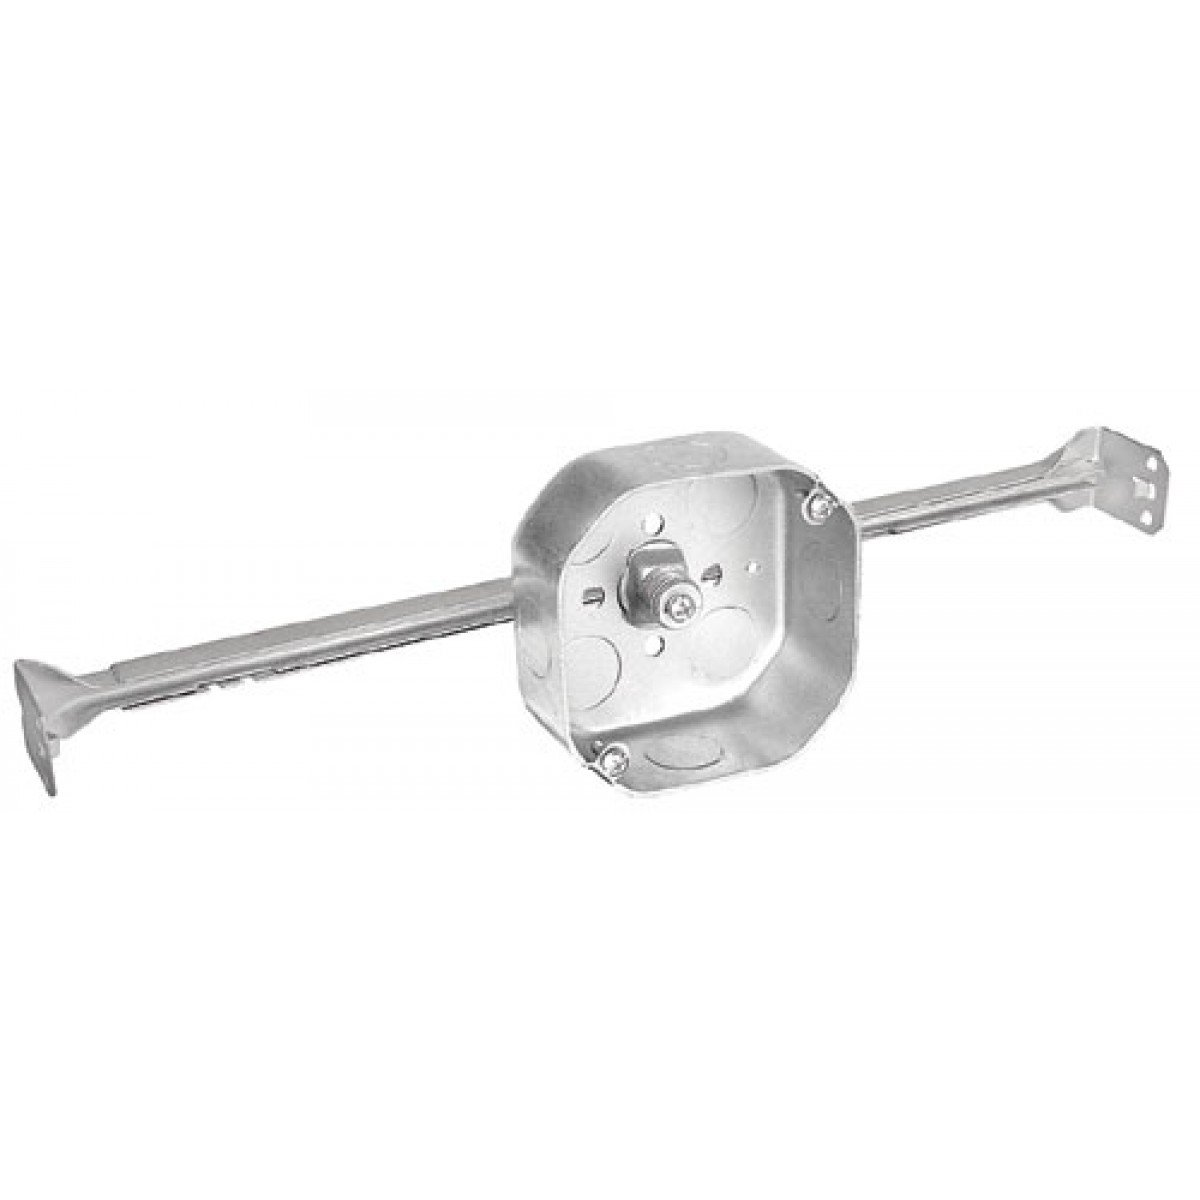 2 Pcs, .0625 Galvanized Steel 4 In. Octagon Box, 1-1/2 In. Deep, New Construction Adjustable Bar Hanger, 1/2 In. Side Knockouts; 1/2 & 3/4 In. Bottom Knockouts For Fixtures, Junction Boxes